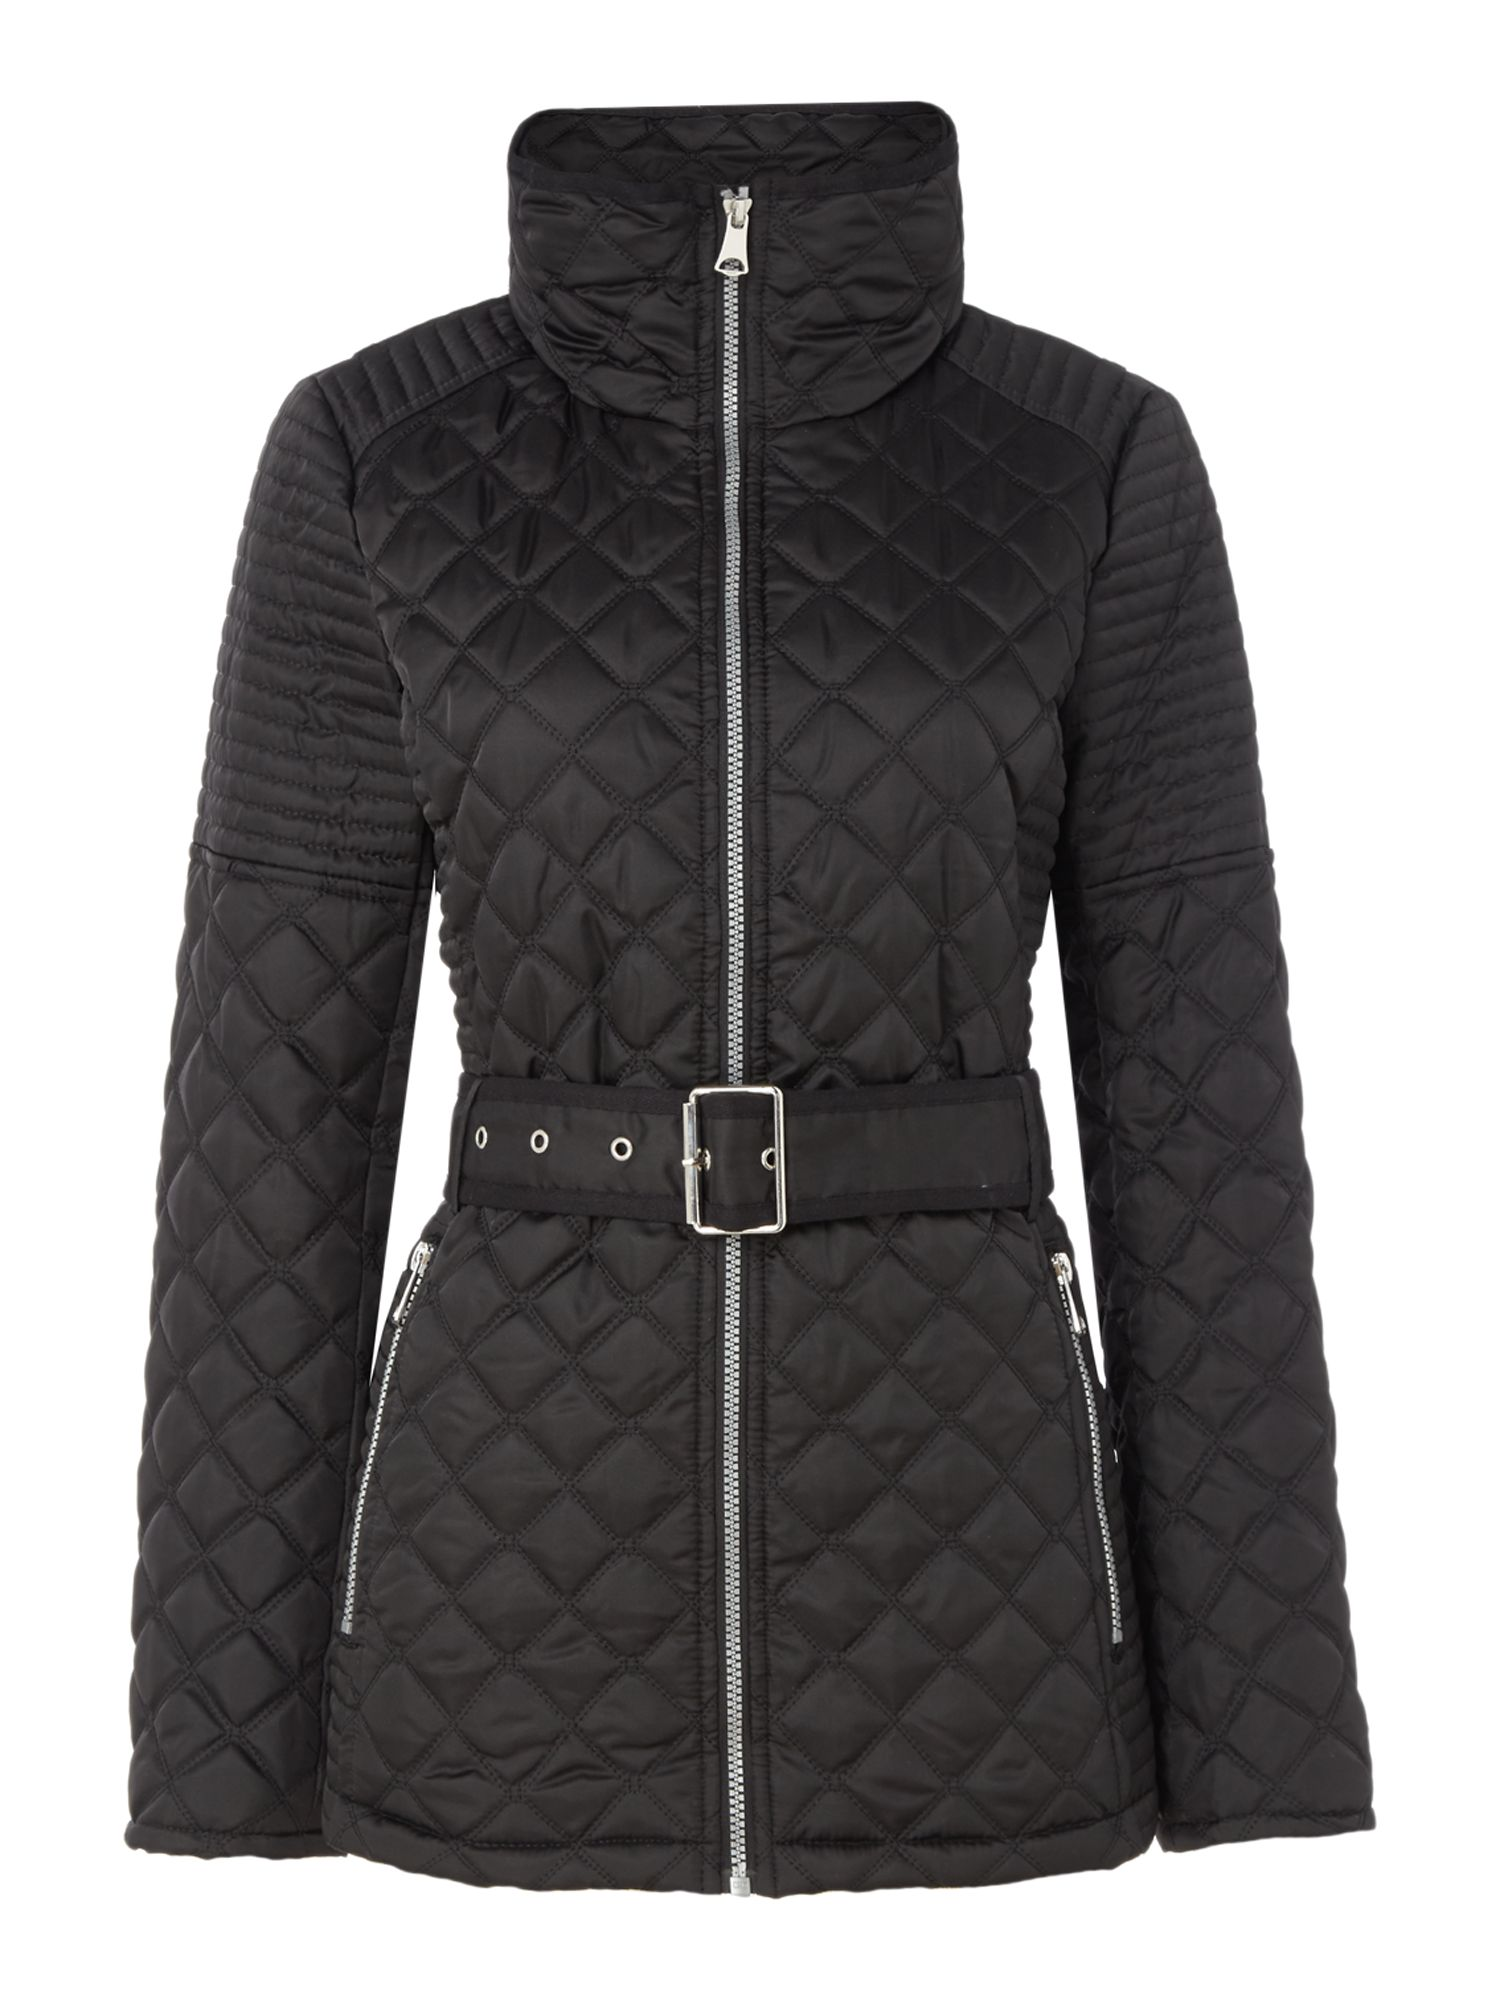 Andrew Marc Quilted jacket with tuck away hood, Black